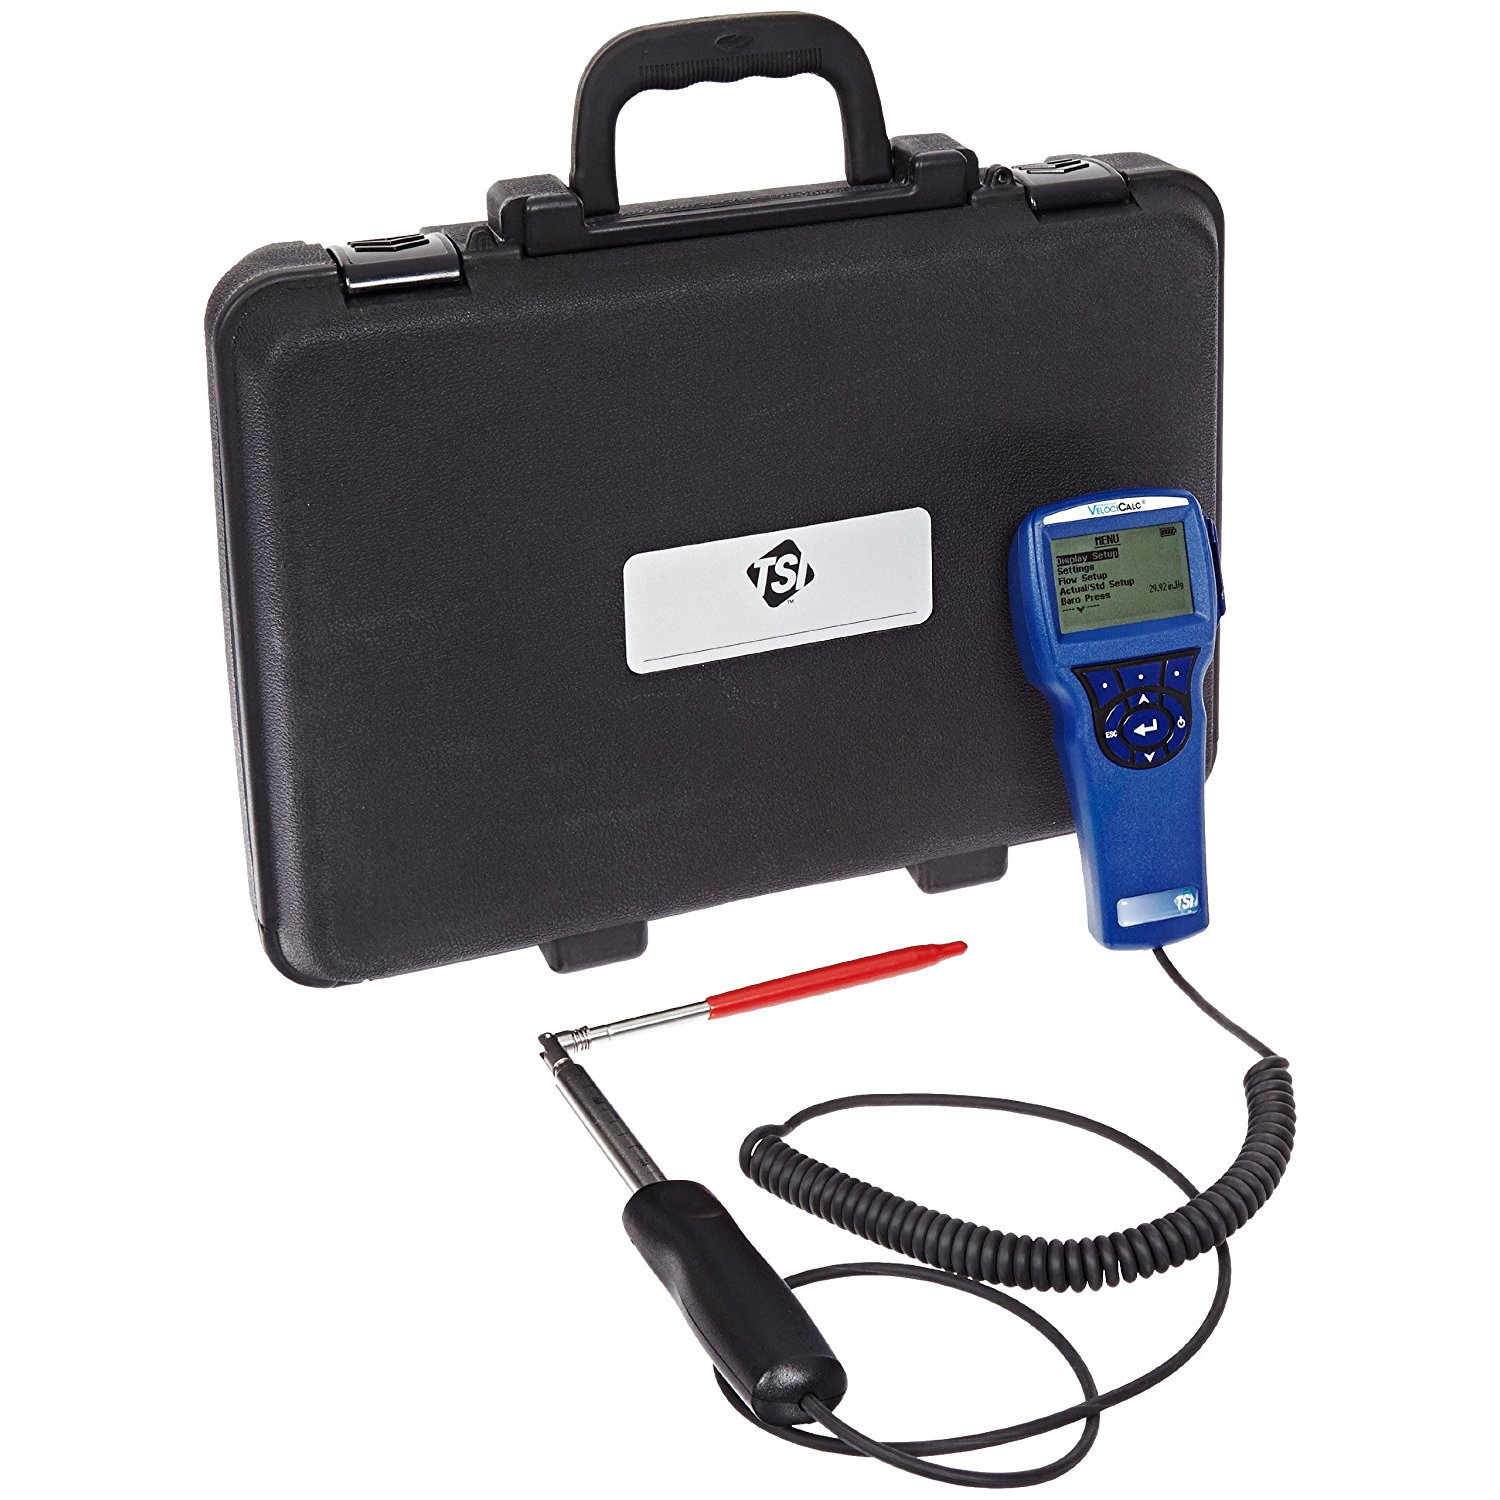 TSI 9535-A Velocicalc Digital Air Velocity Meter with Articulated Probe